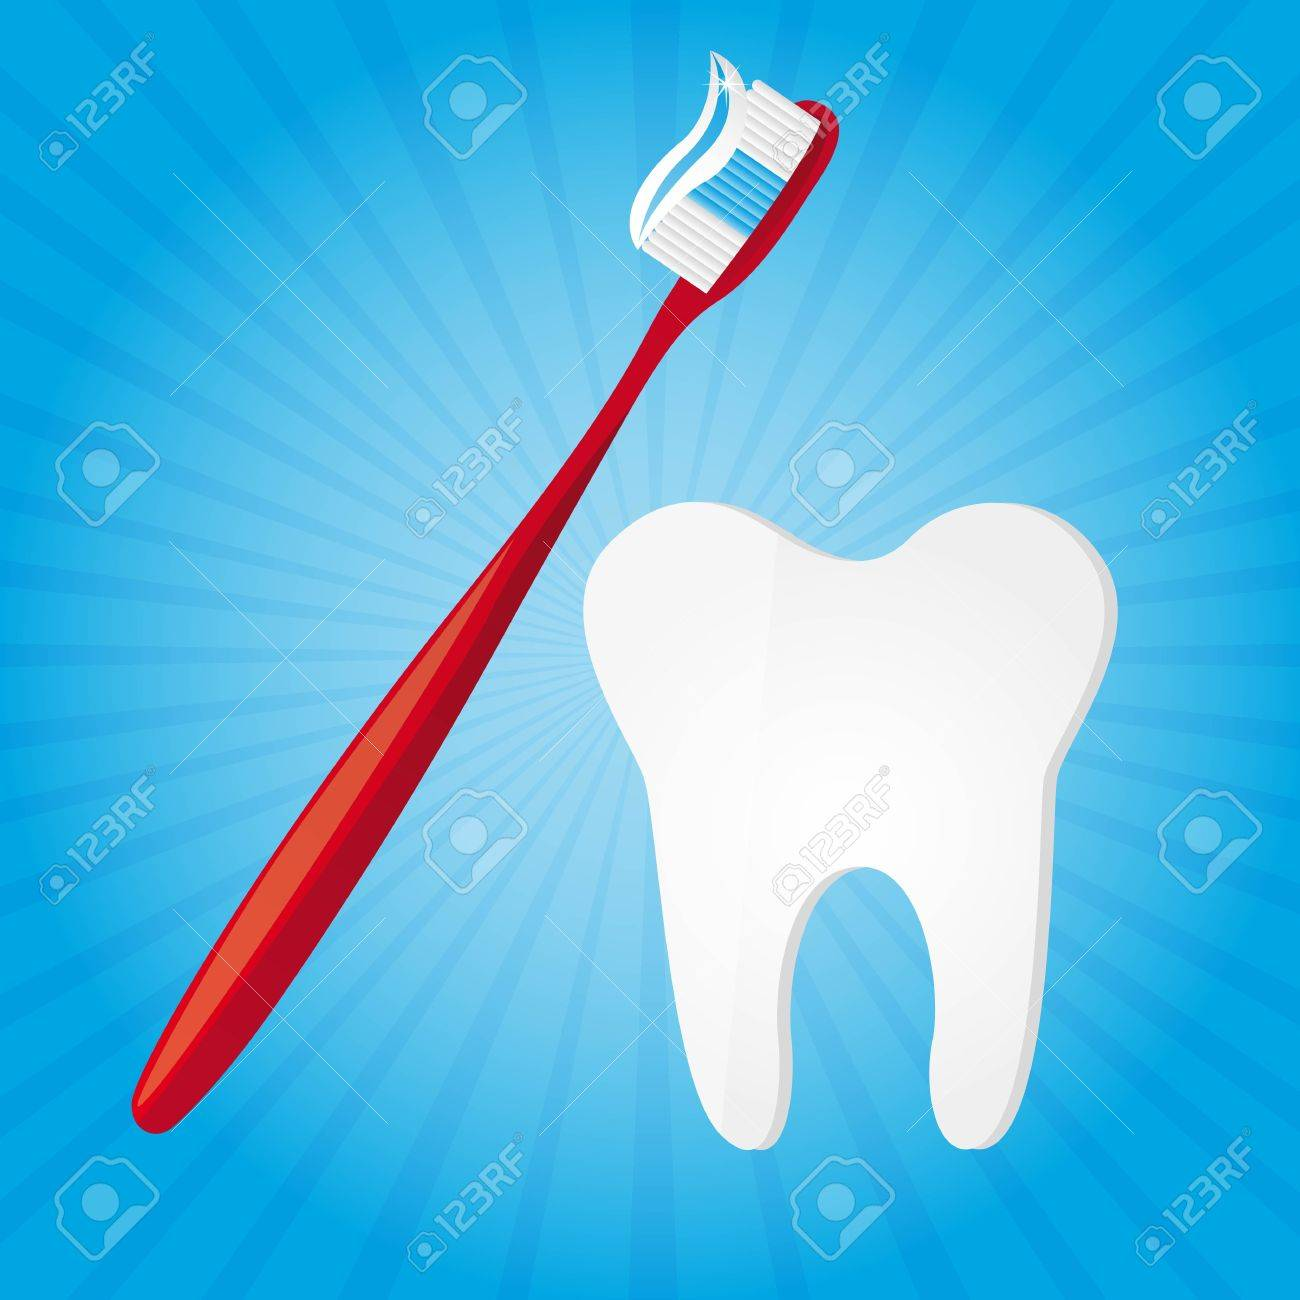 toothbrush and tooth over blue background vector illustration Stock Vector - 11657345